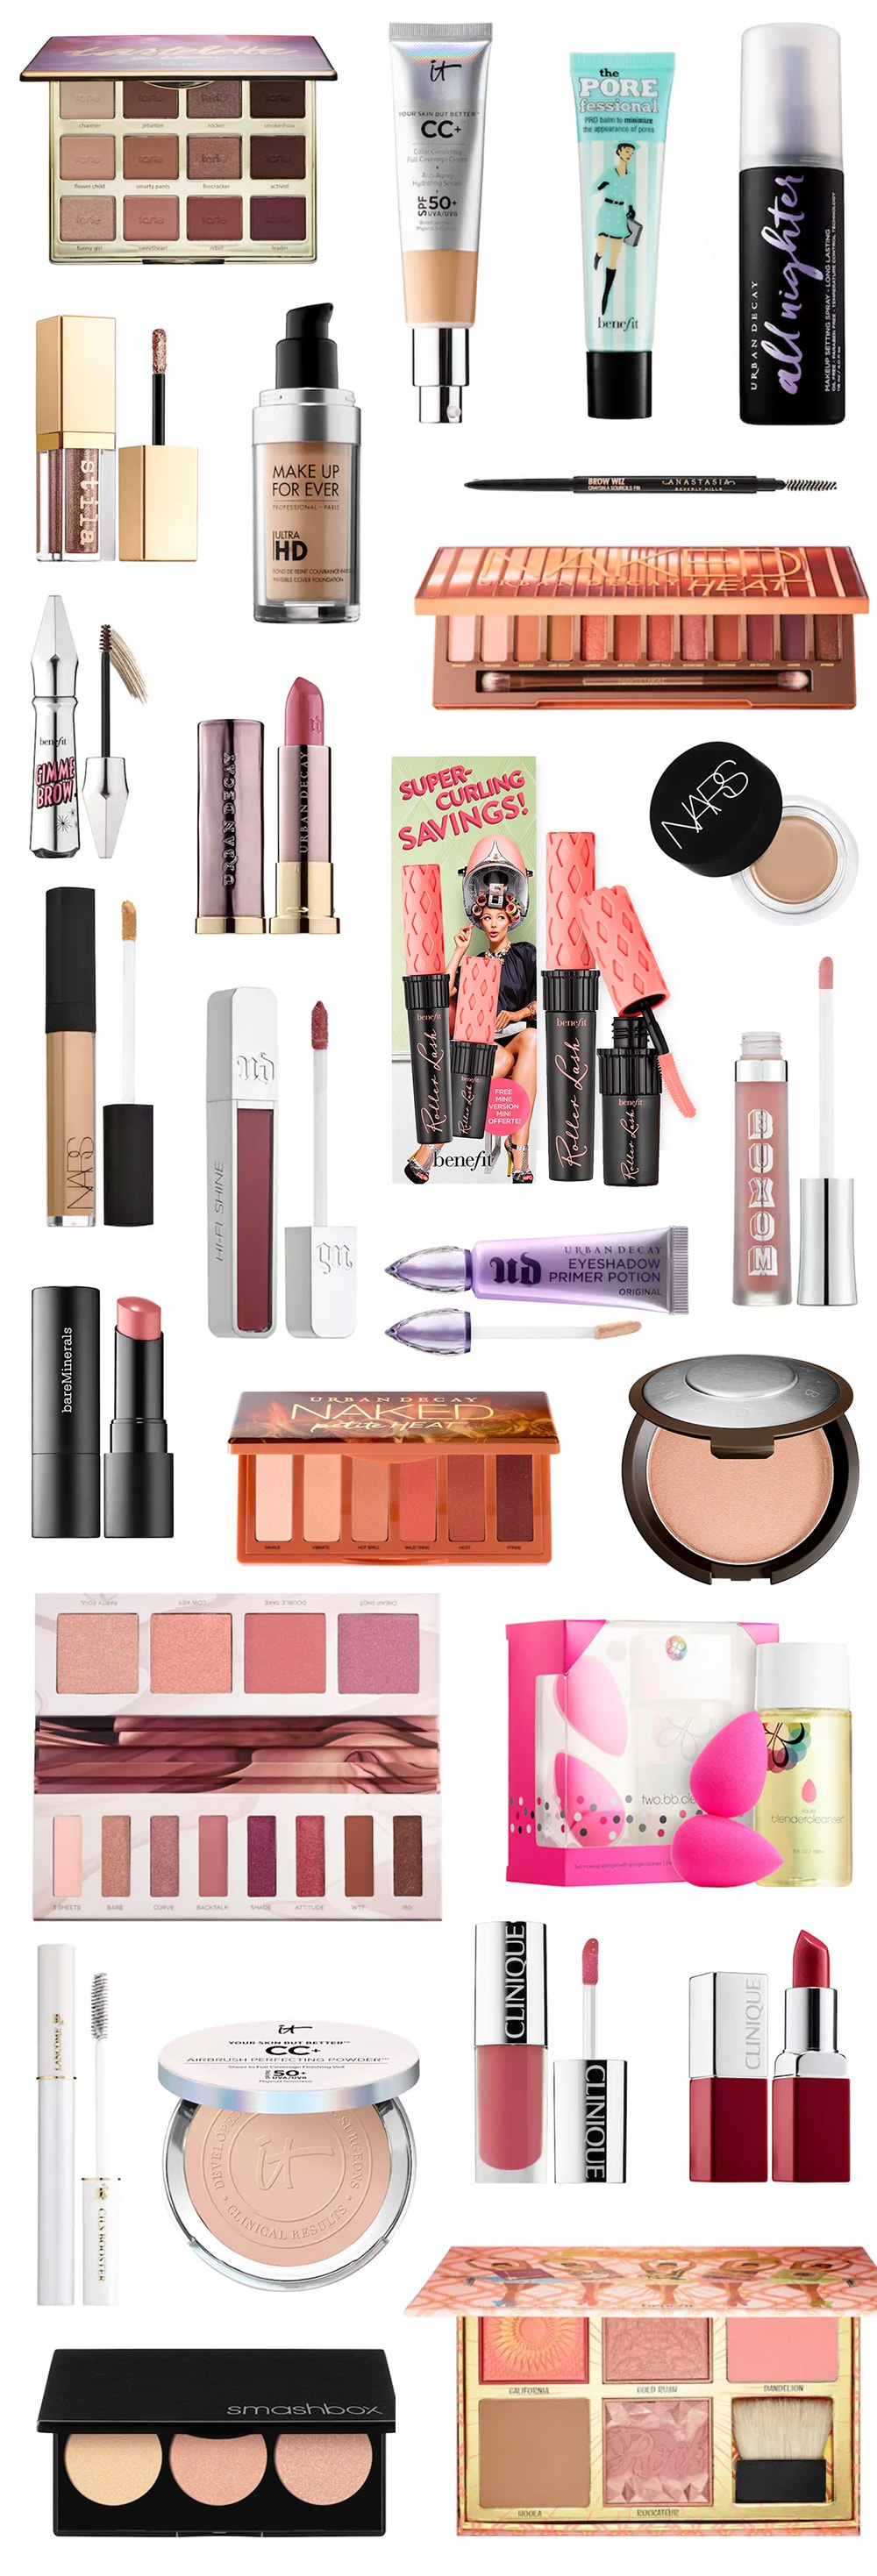 Best of Sephora + What To Buy At The Sephora VIB Sale